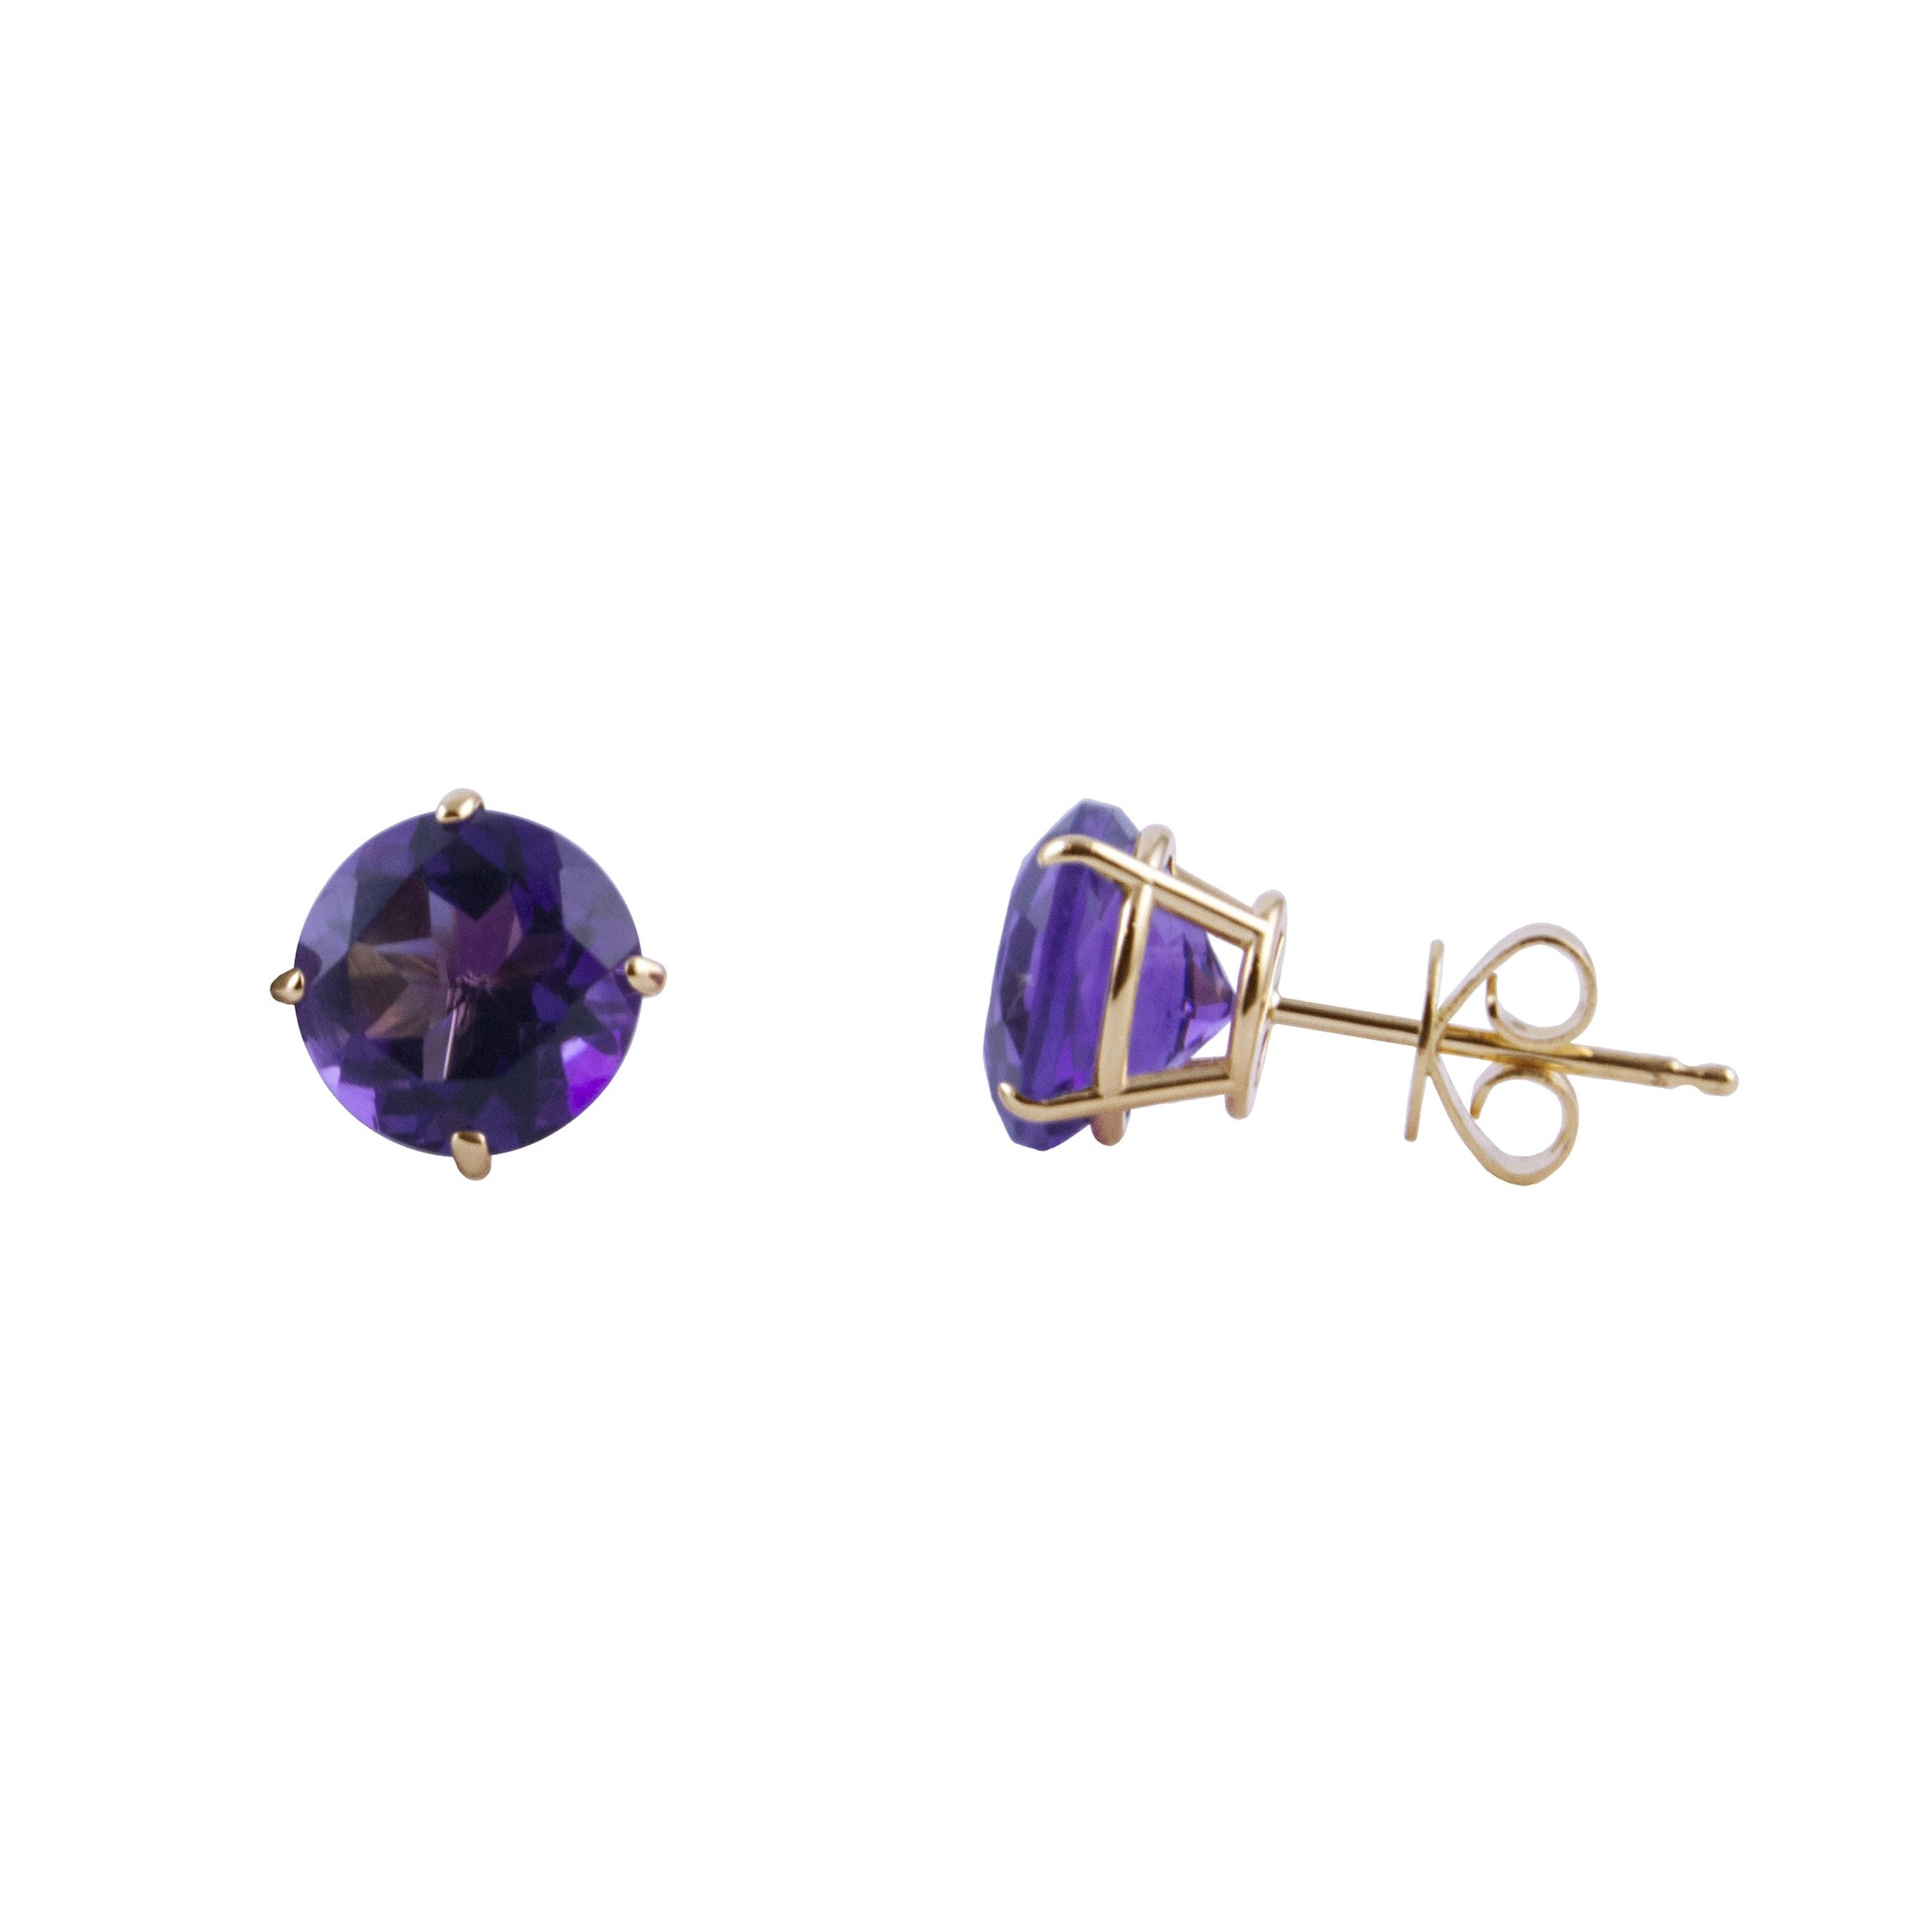 Round Amethyst Stud Earrings, 7MM, 14K Yellow Gold